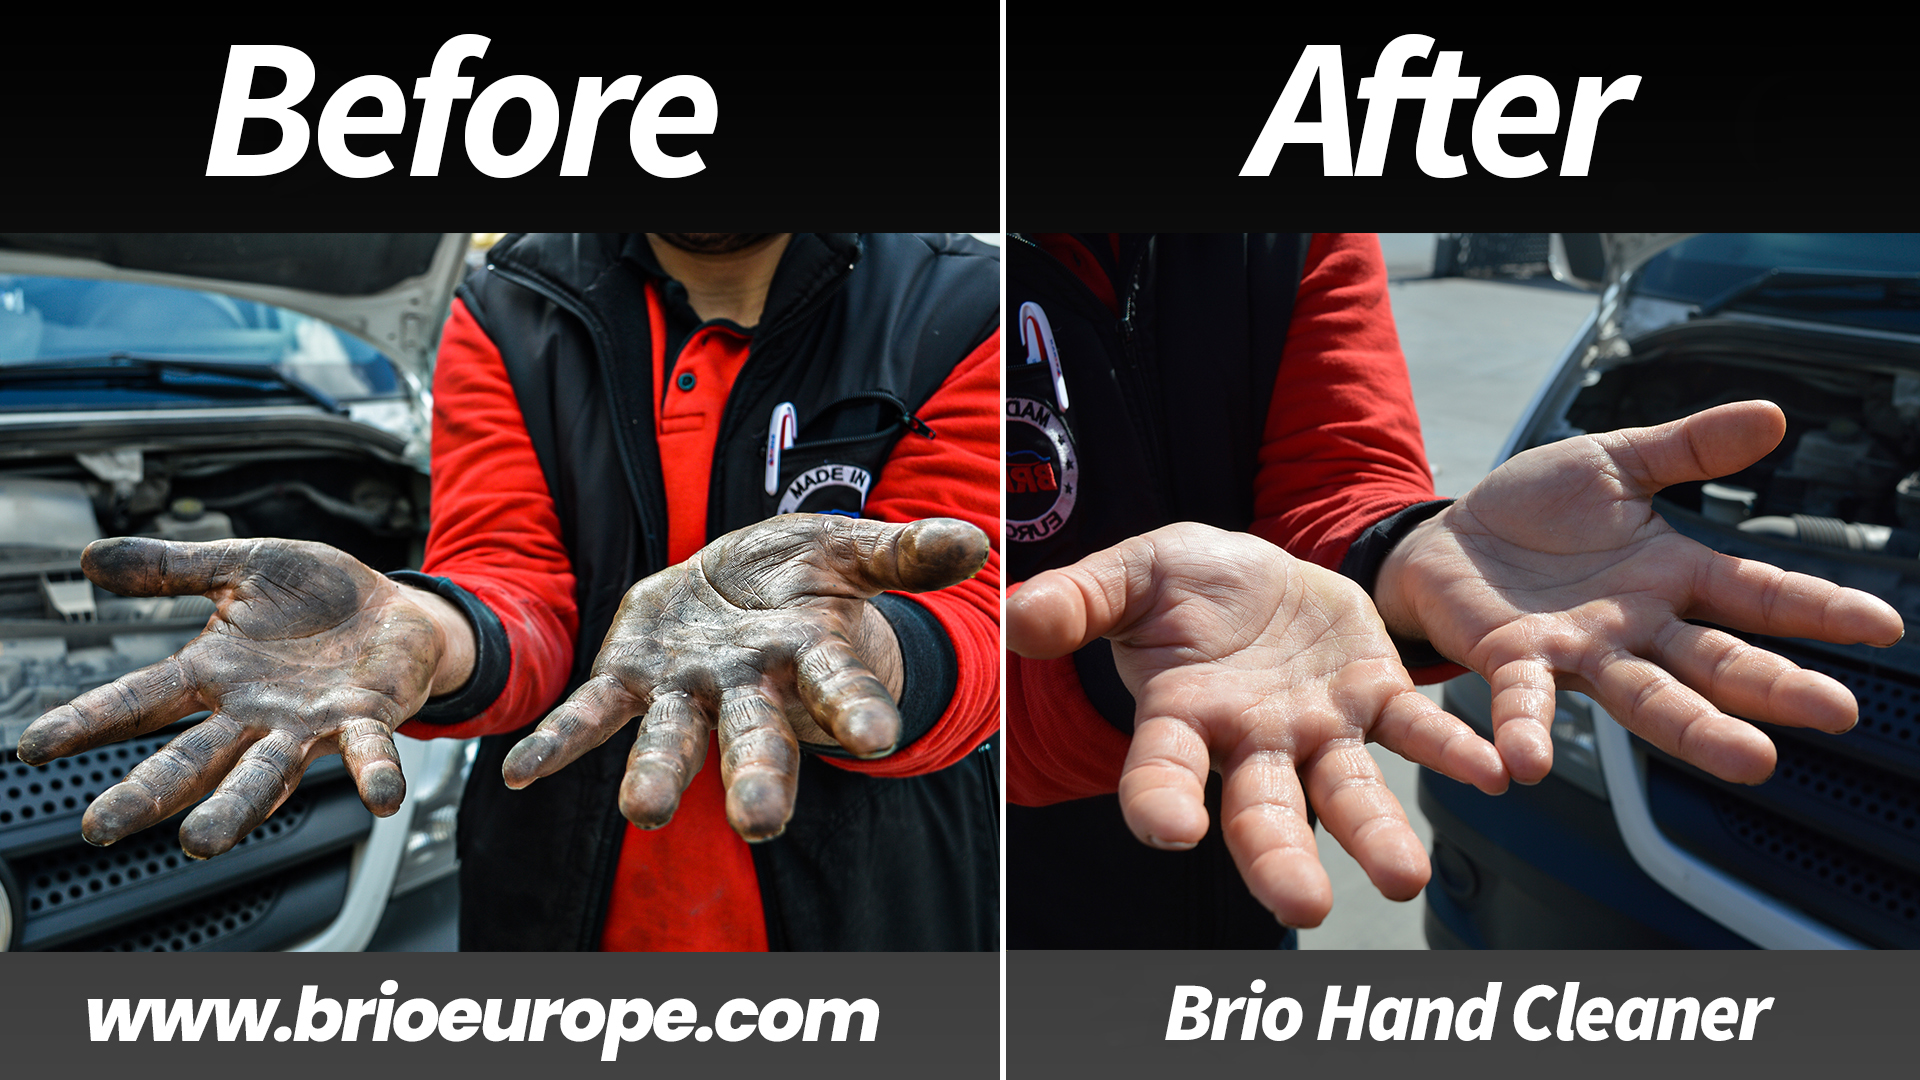 Before and After Hand Cleaner